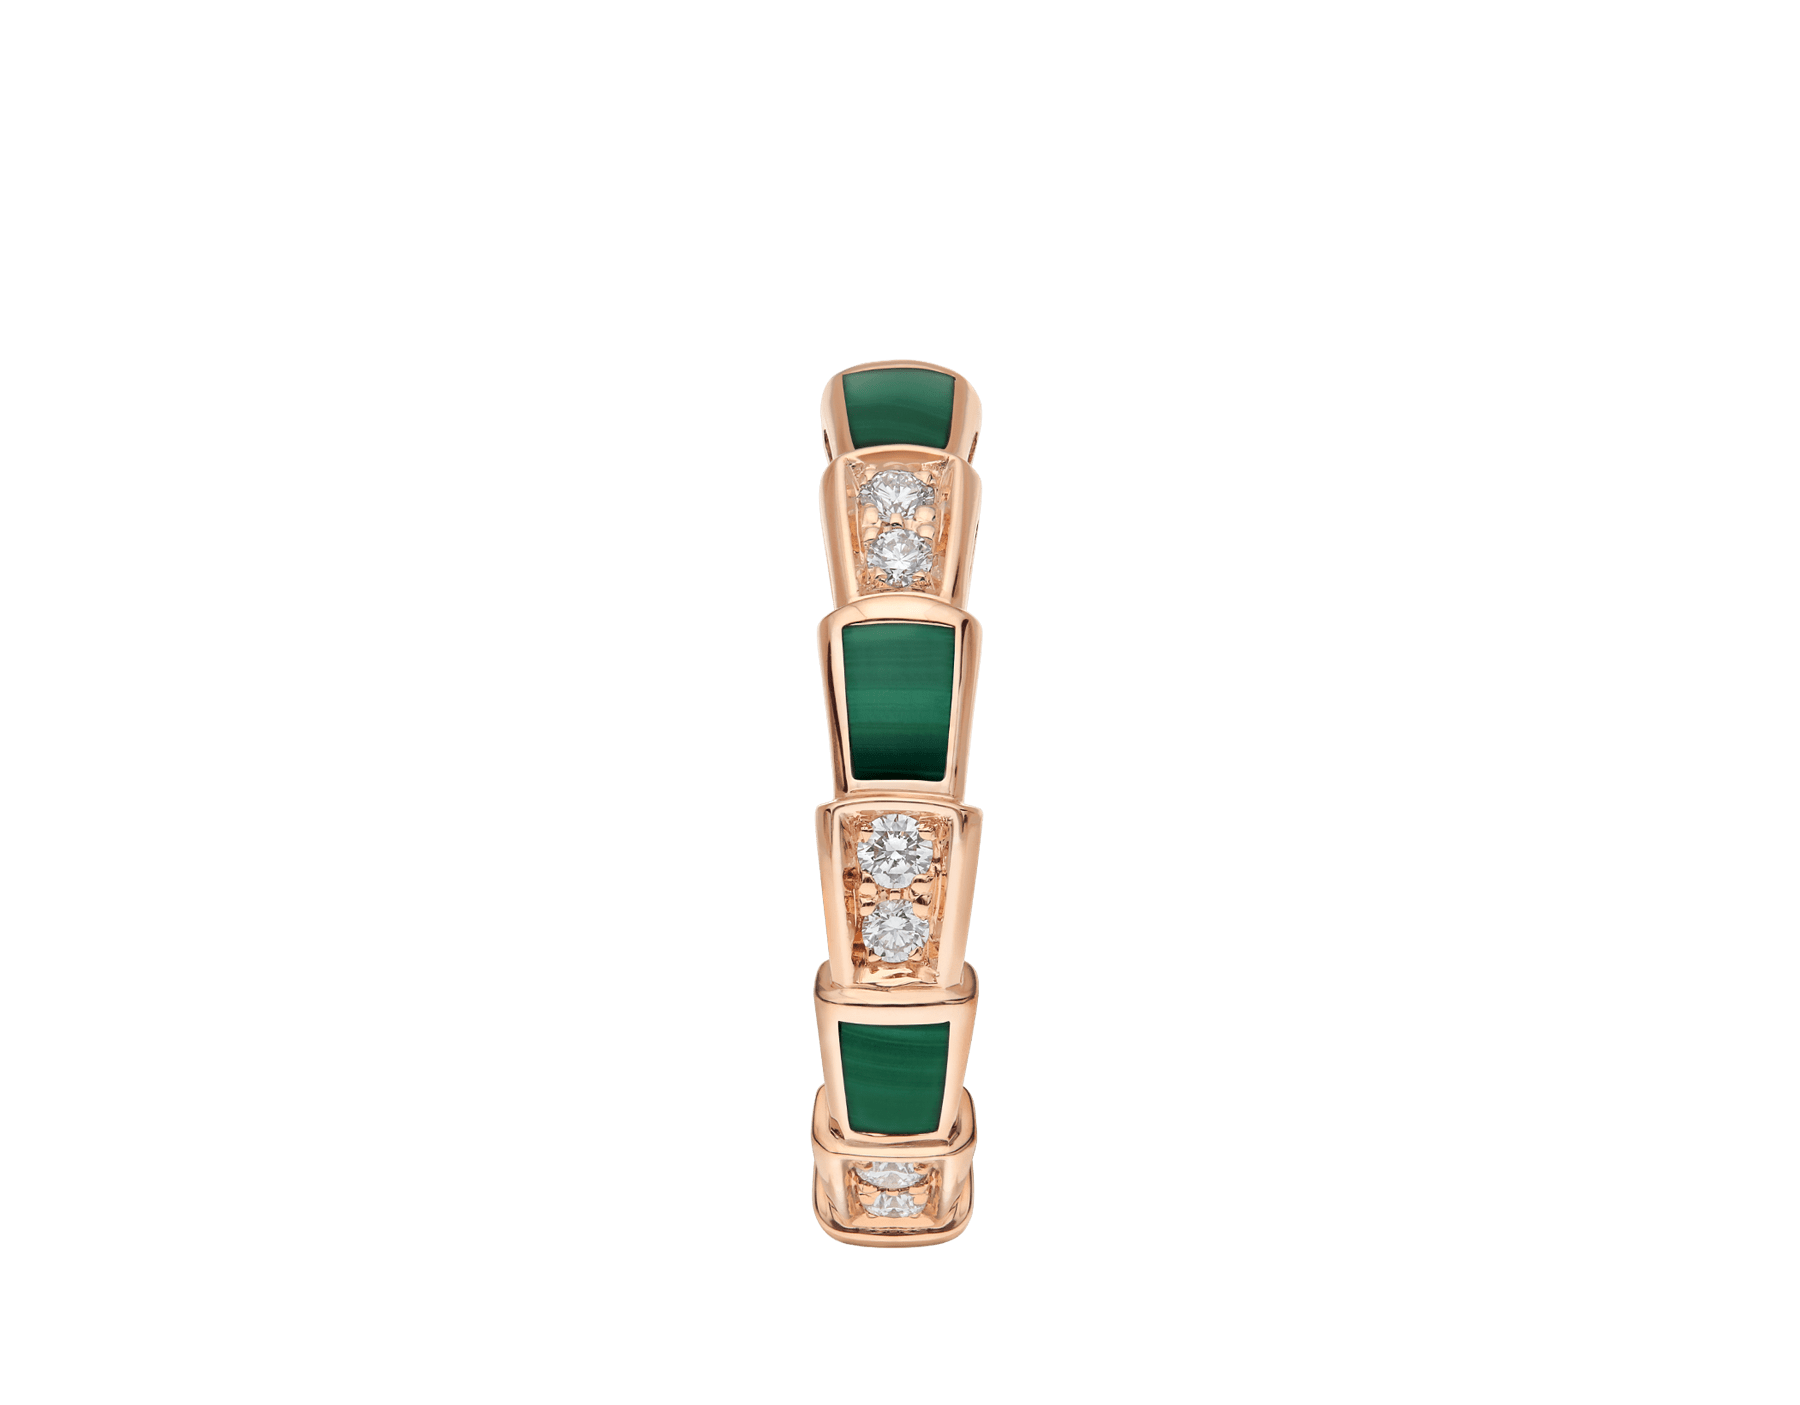 Bague fine Serpenti Viper en or rose 18 K sertie d'éléments en malachite, avec pavé diamants (0,20 ct) AN858752 image 2